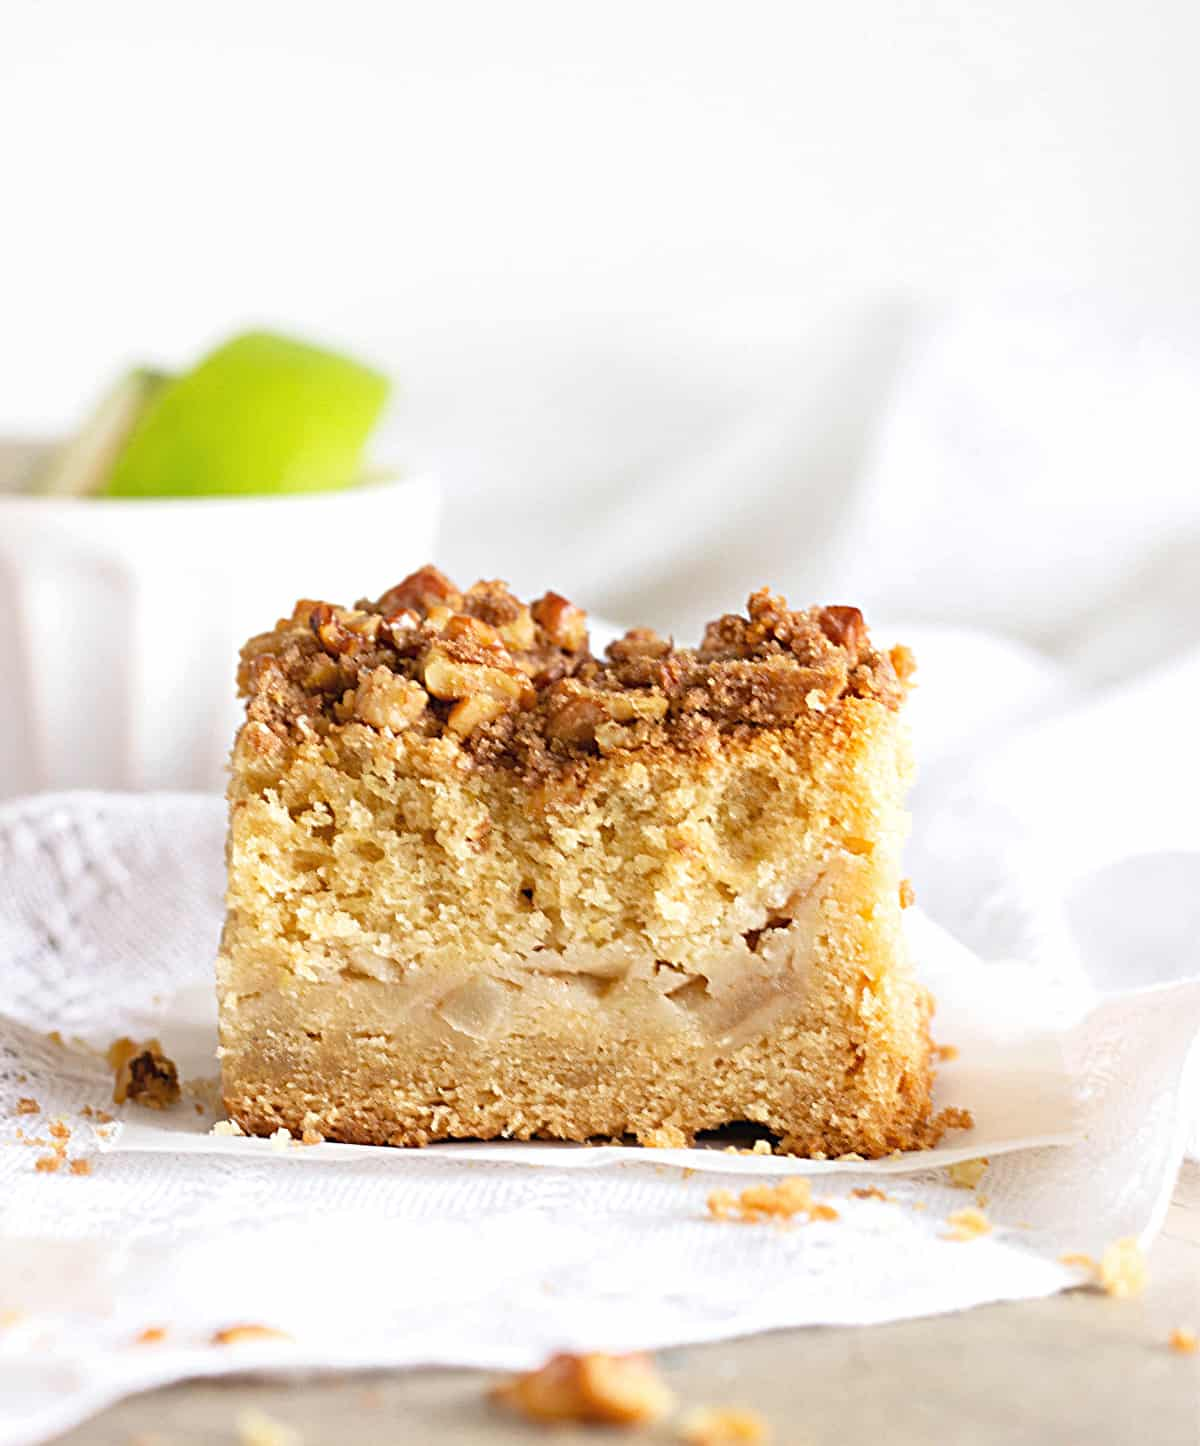 Squares of Apple coffee cake, white surface, white bowl and green apples